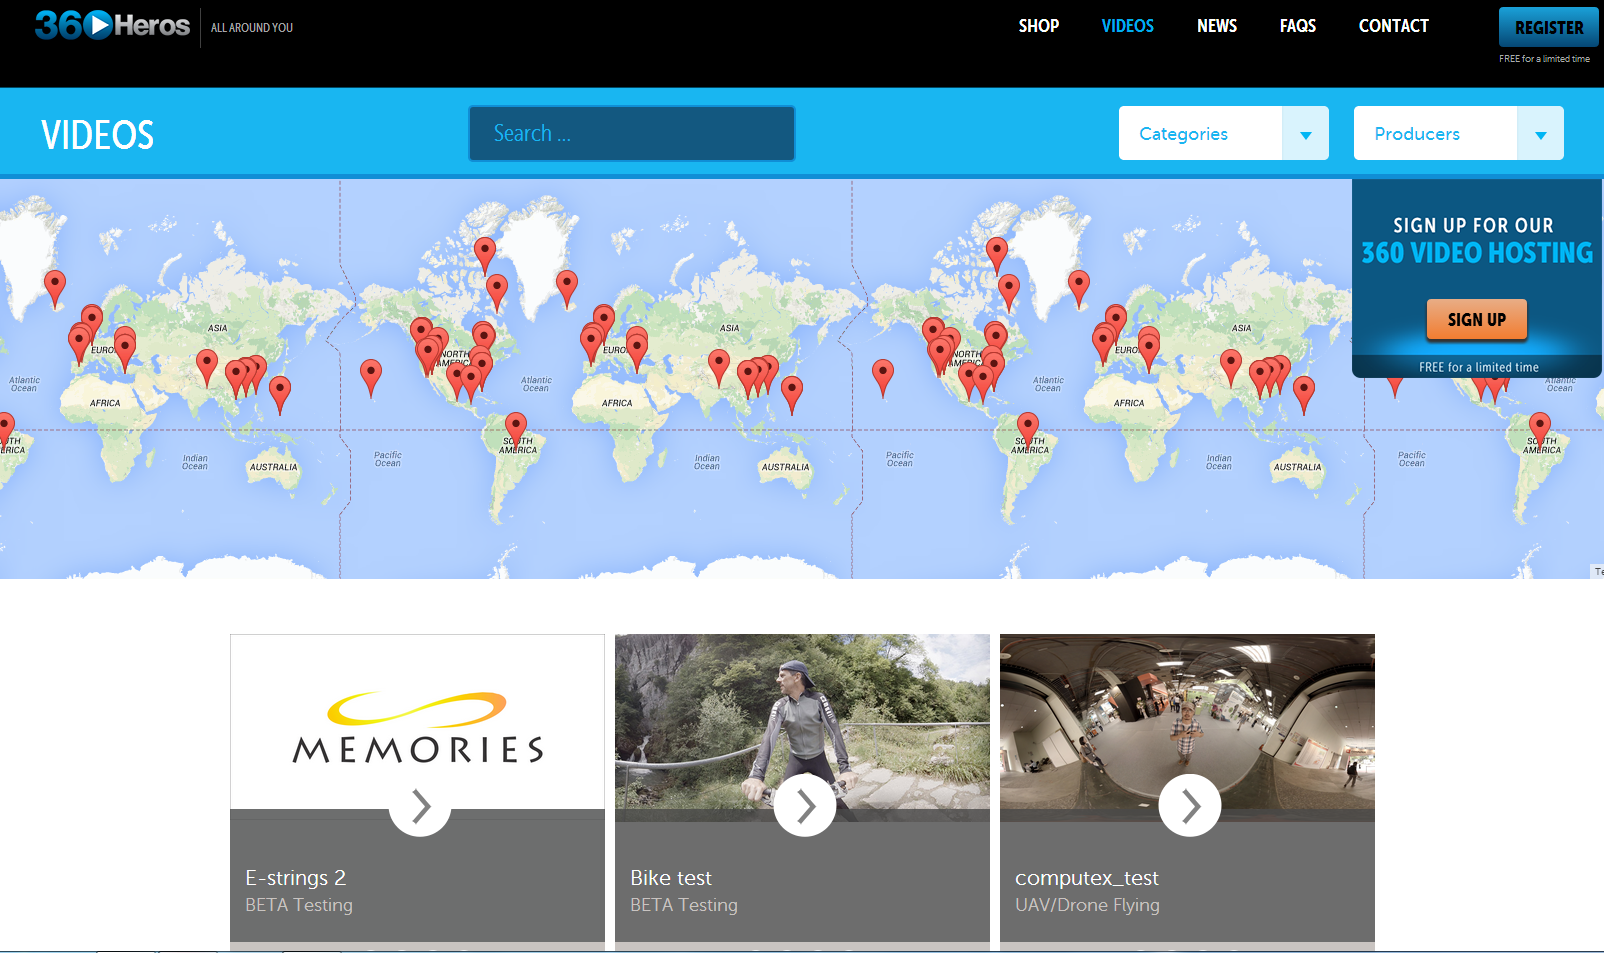 Share Your 360 Adventures With Our FREE 360 Video Hosting Service